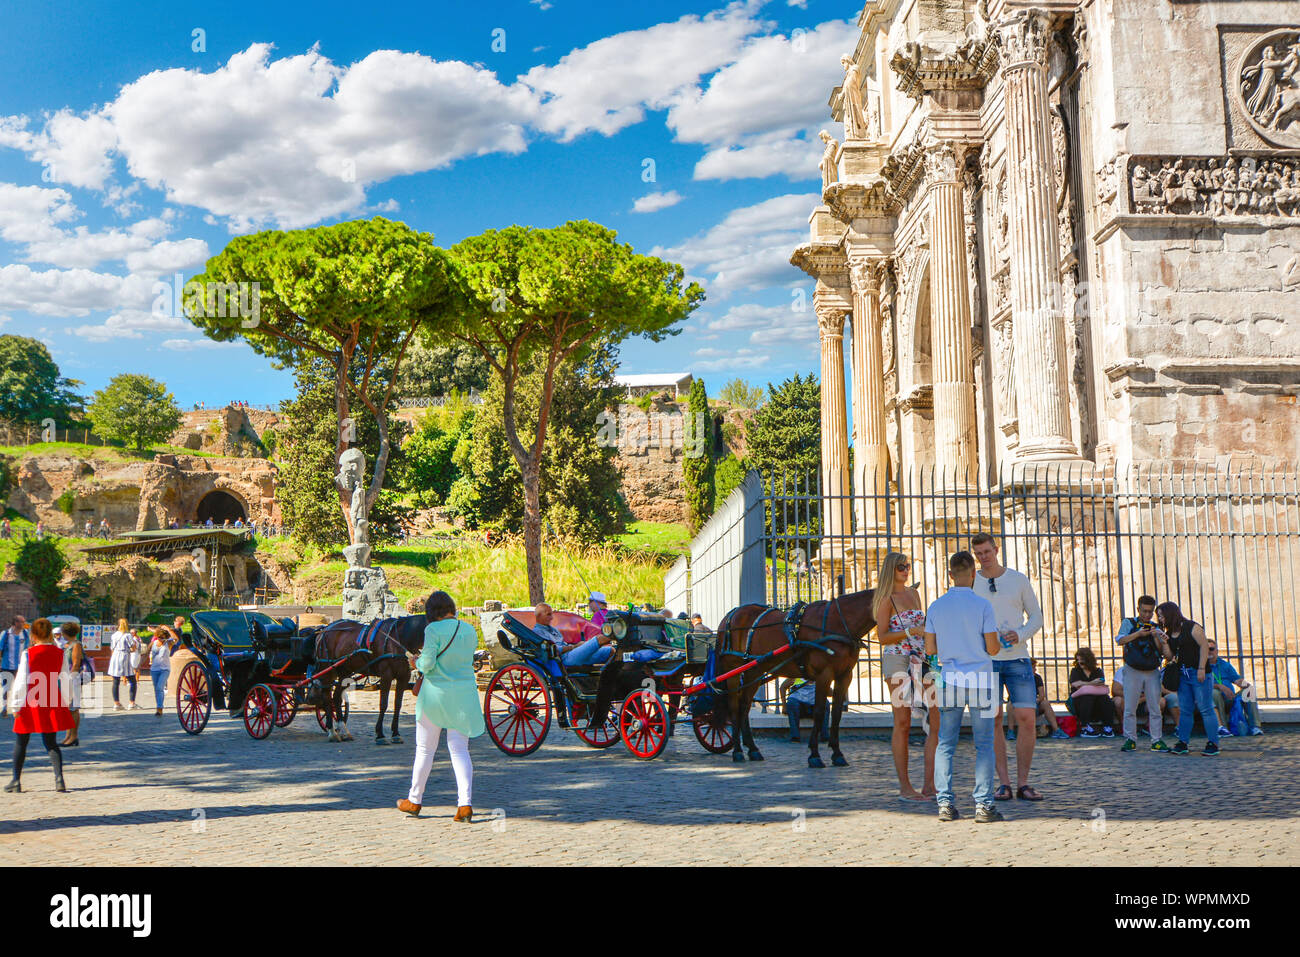 Tourists at the Arch of Constantine near the Colosseum and the Roman Forum with Capitoline Hill in the background as horse and carriages wait for hire Stock Photo